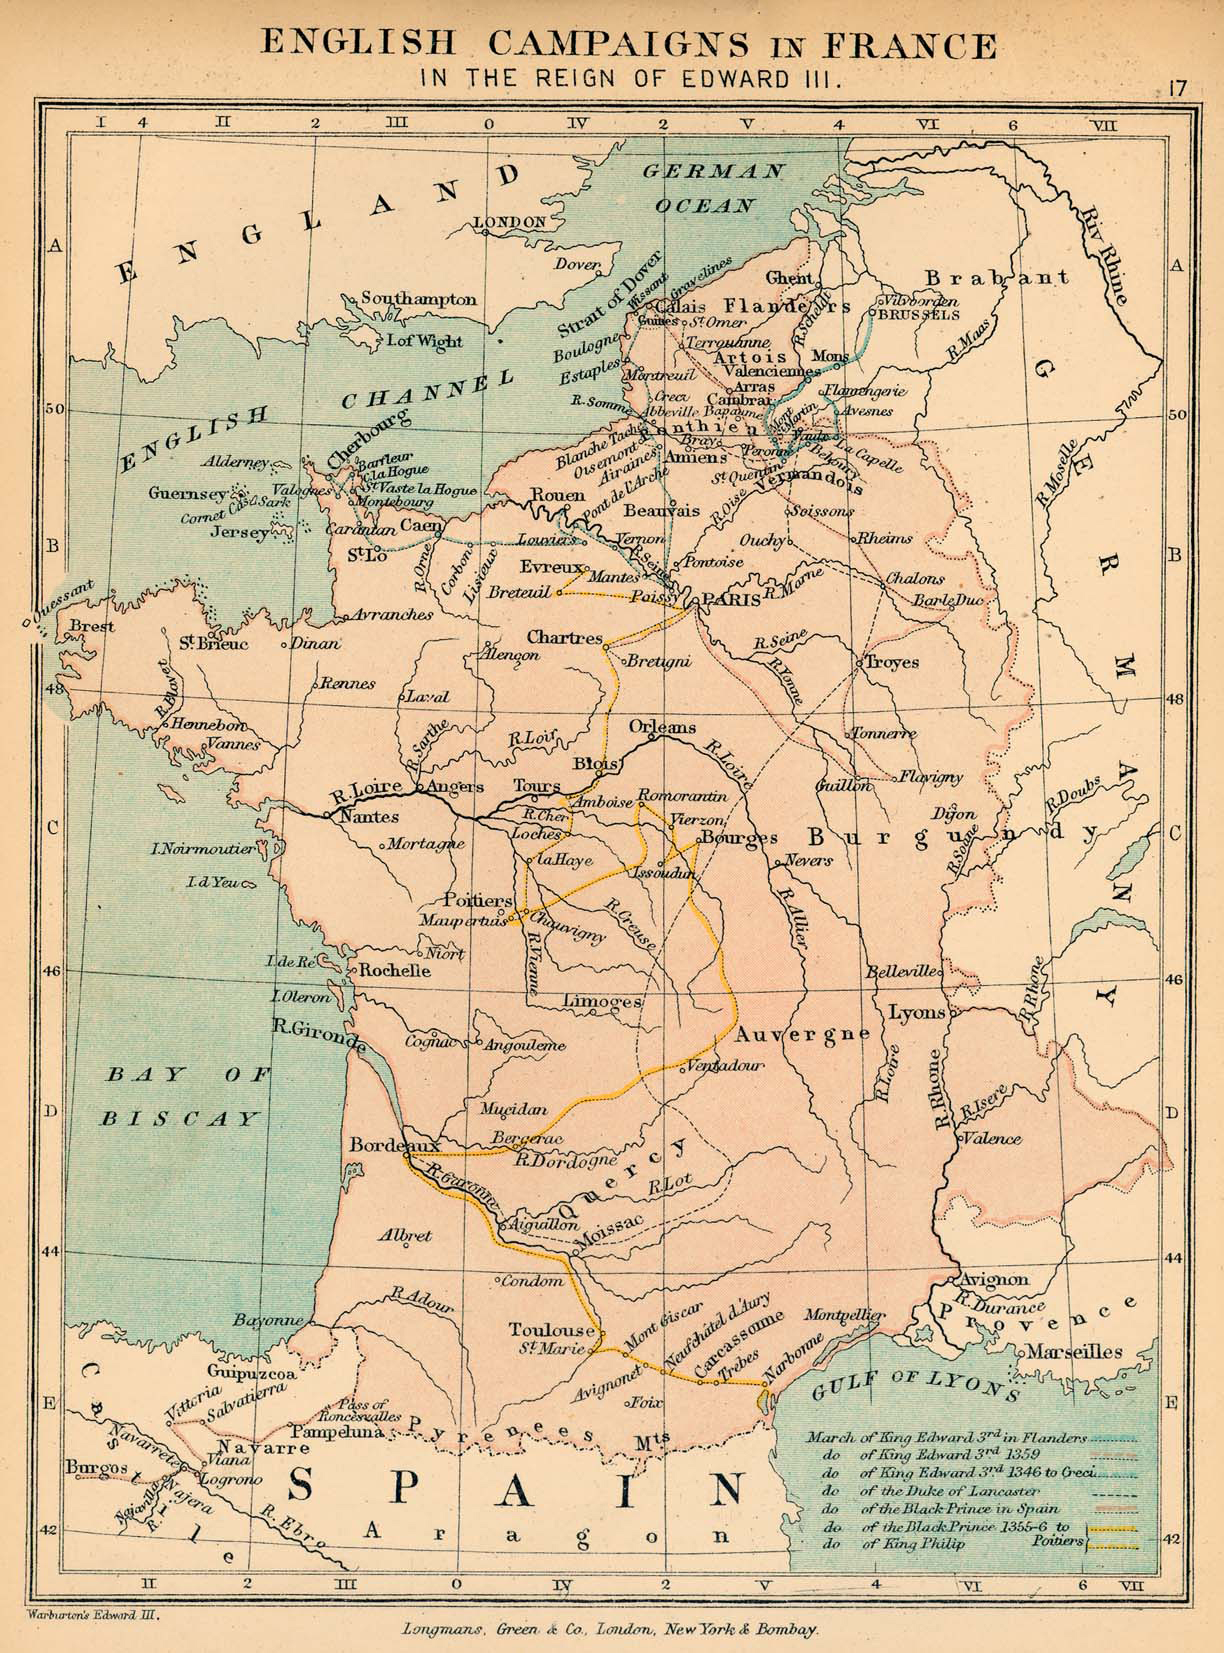 Map of the English Campaigns in France in the Reign of Edward III 1327-1377